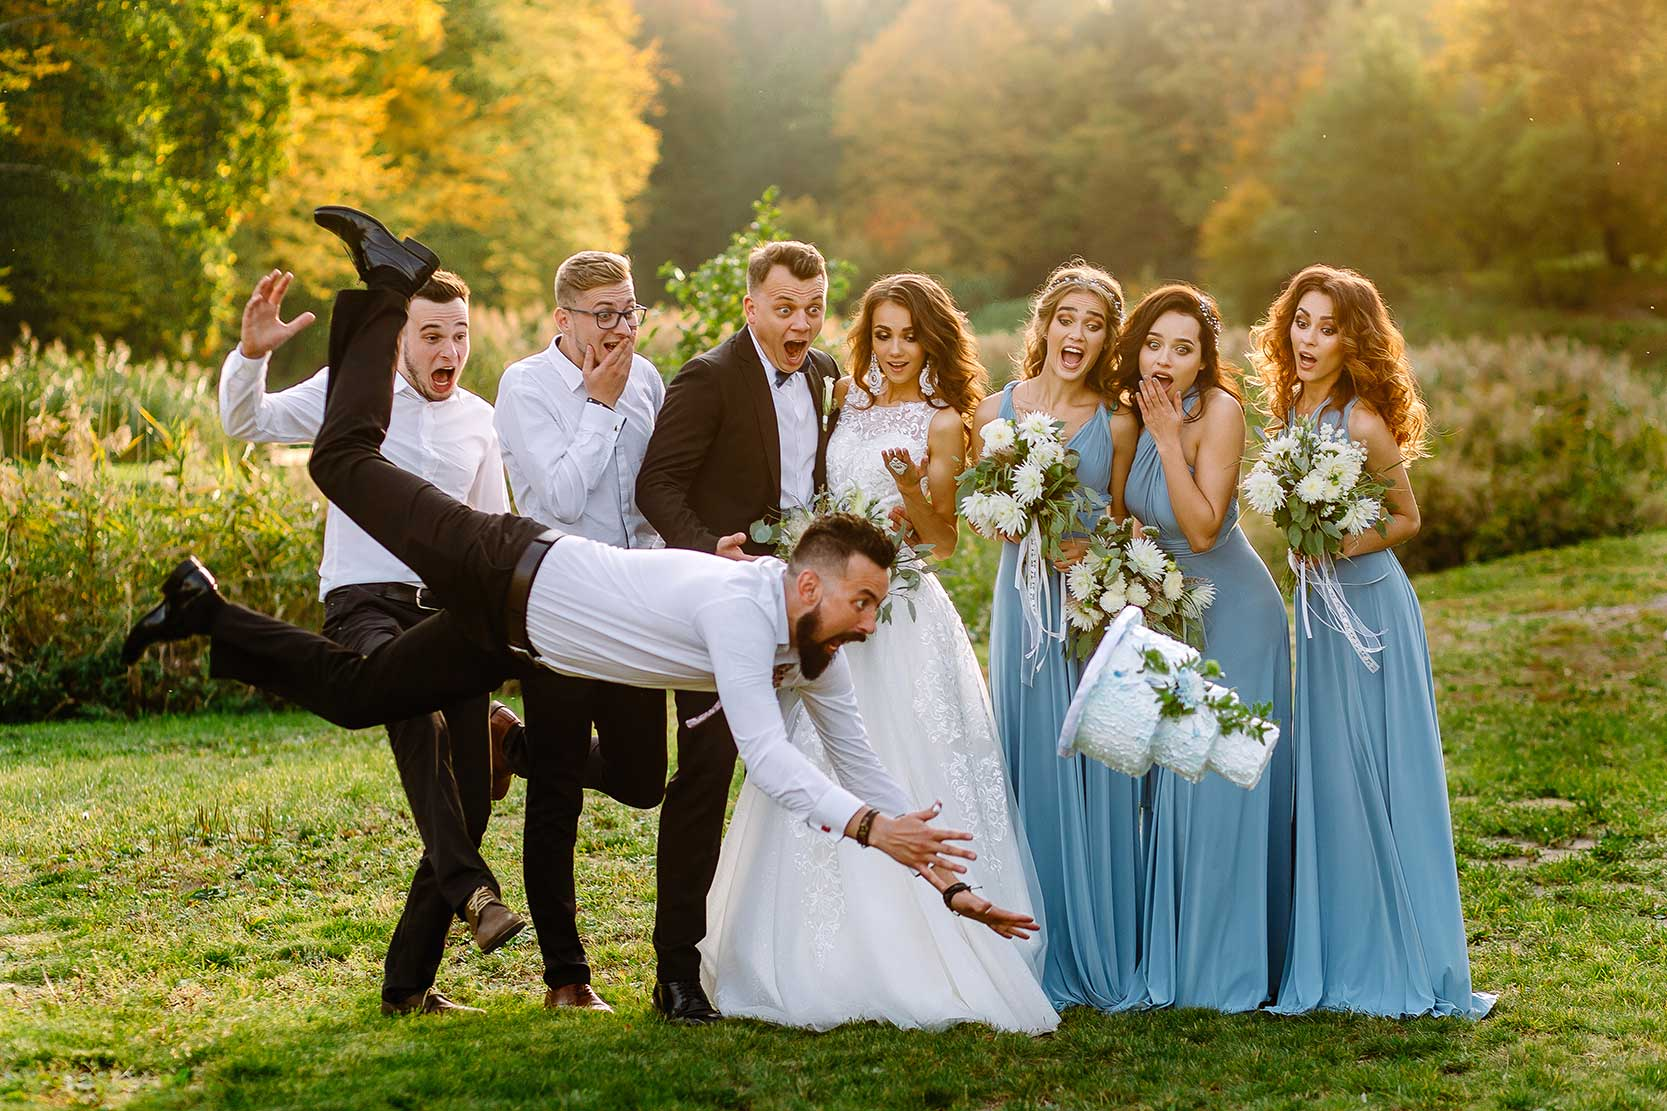 Funny photo of a man dropping a wedding cake